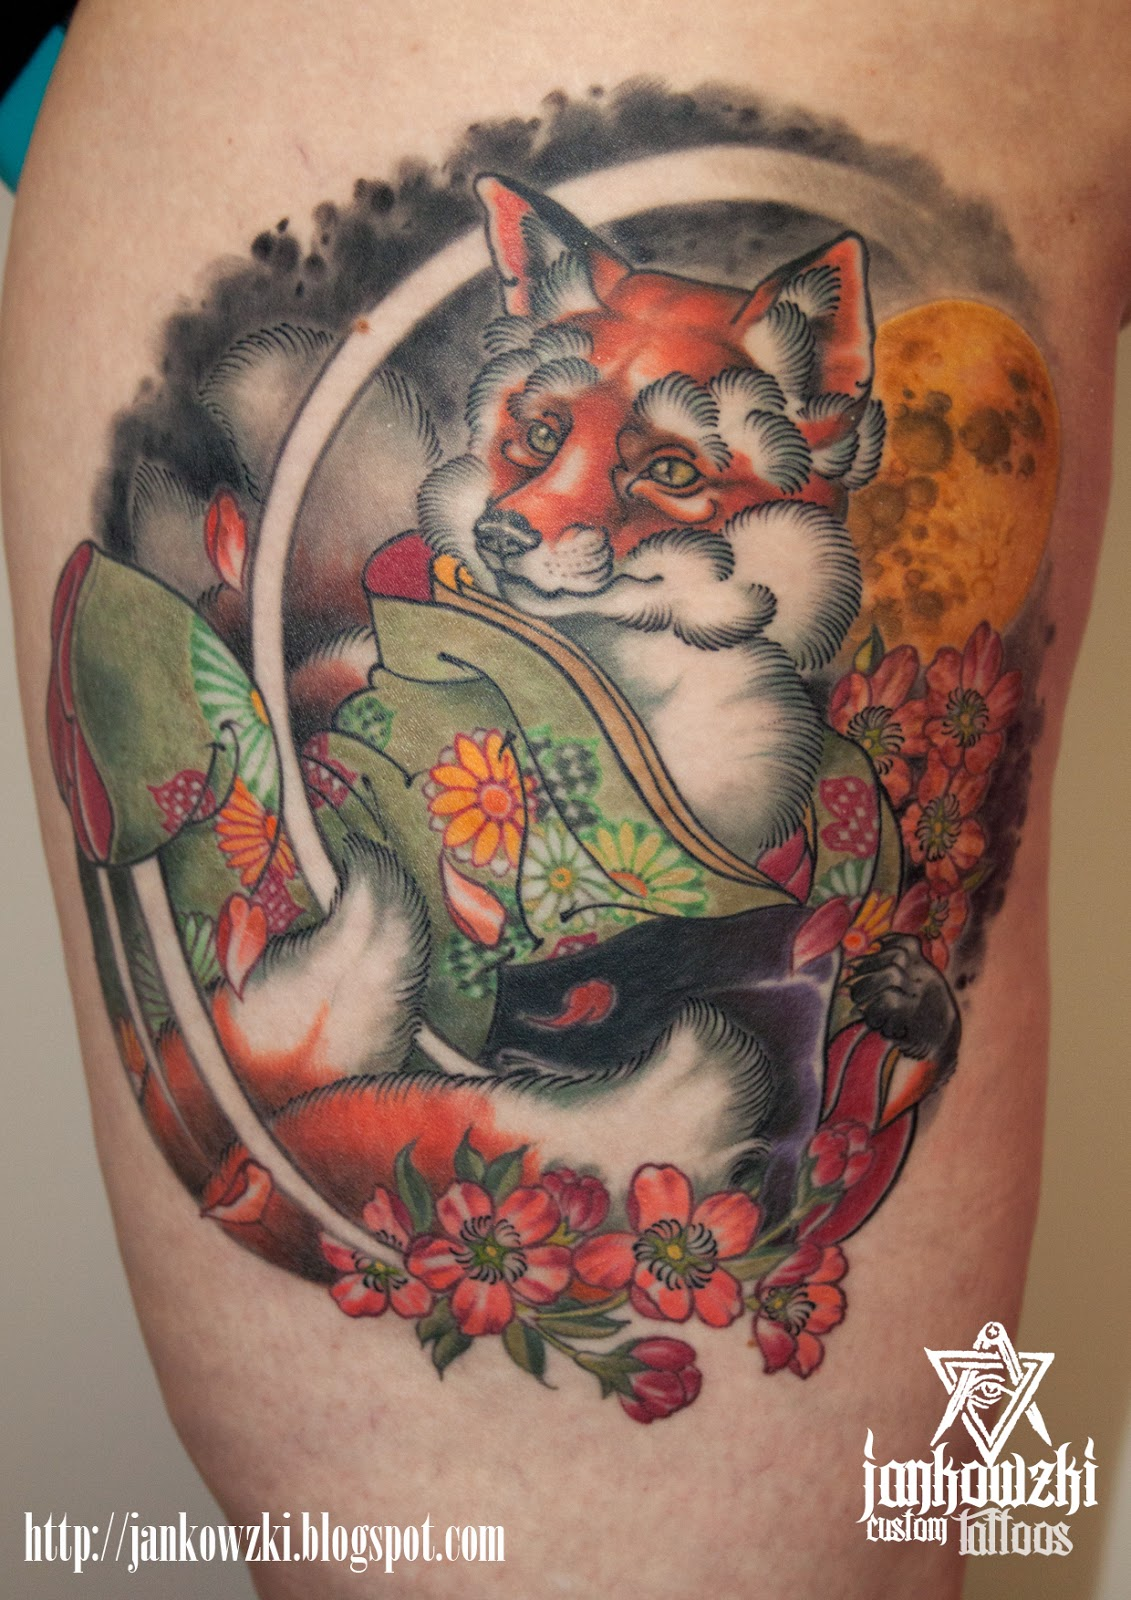 Traditional Kitsune Tattoo: Jankowzki Custom Tattoos: Oriental Tattoos